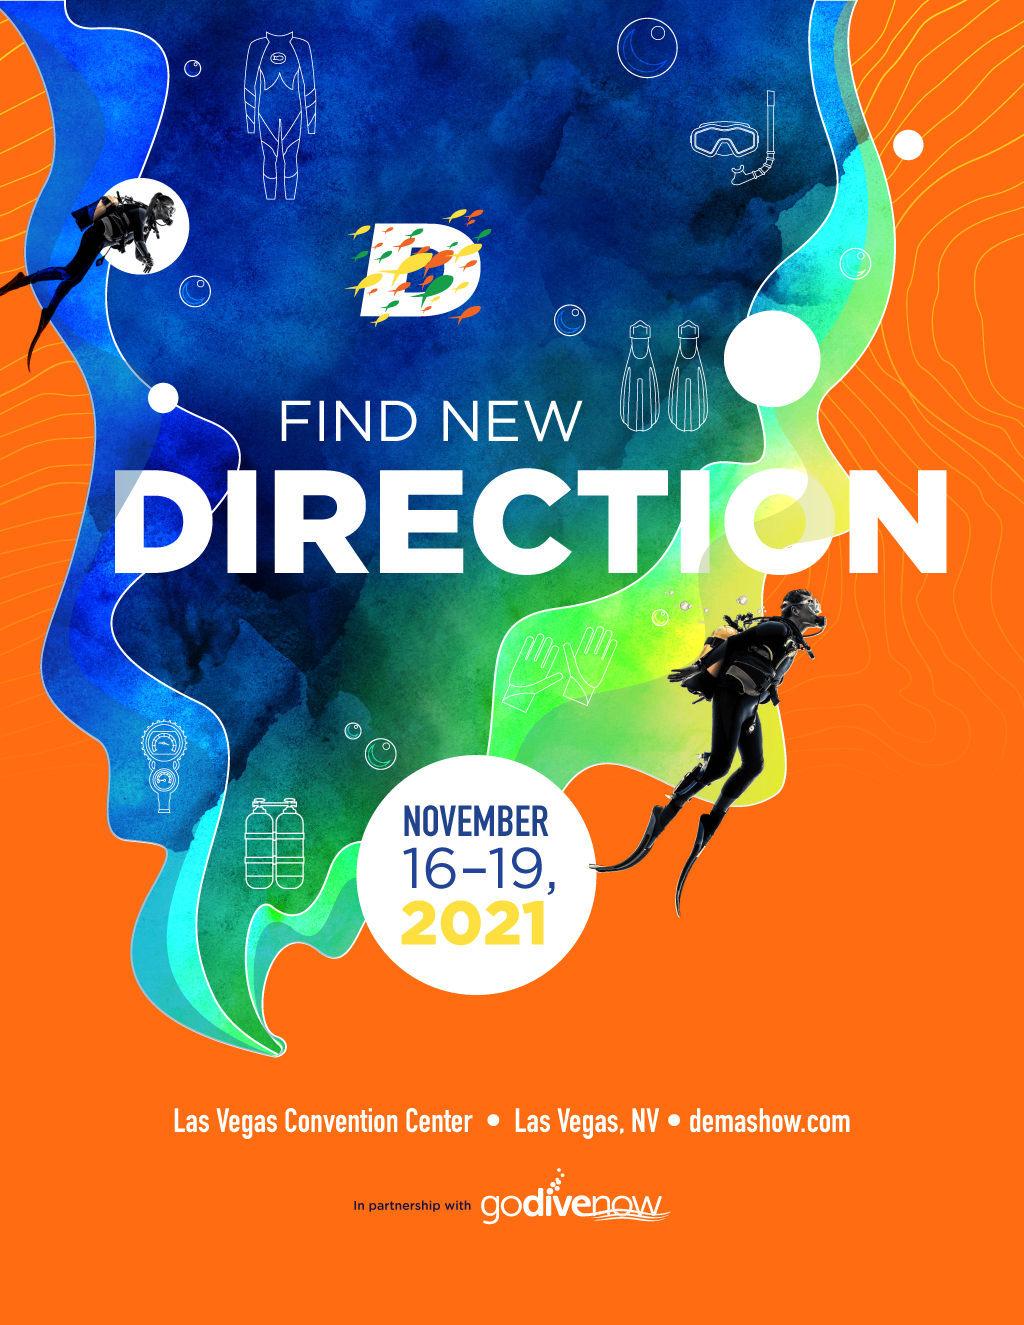 """1st brand identity concept and branding feature image for the marketing tagline, """"Find New Direction."""""""